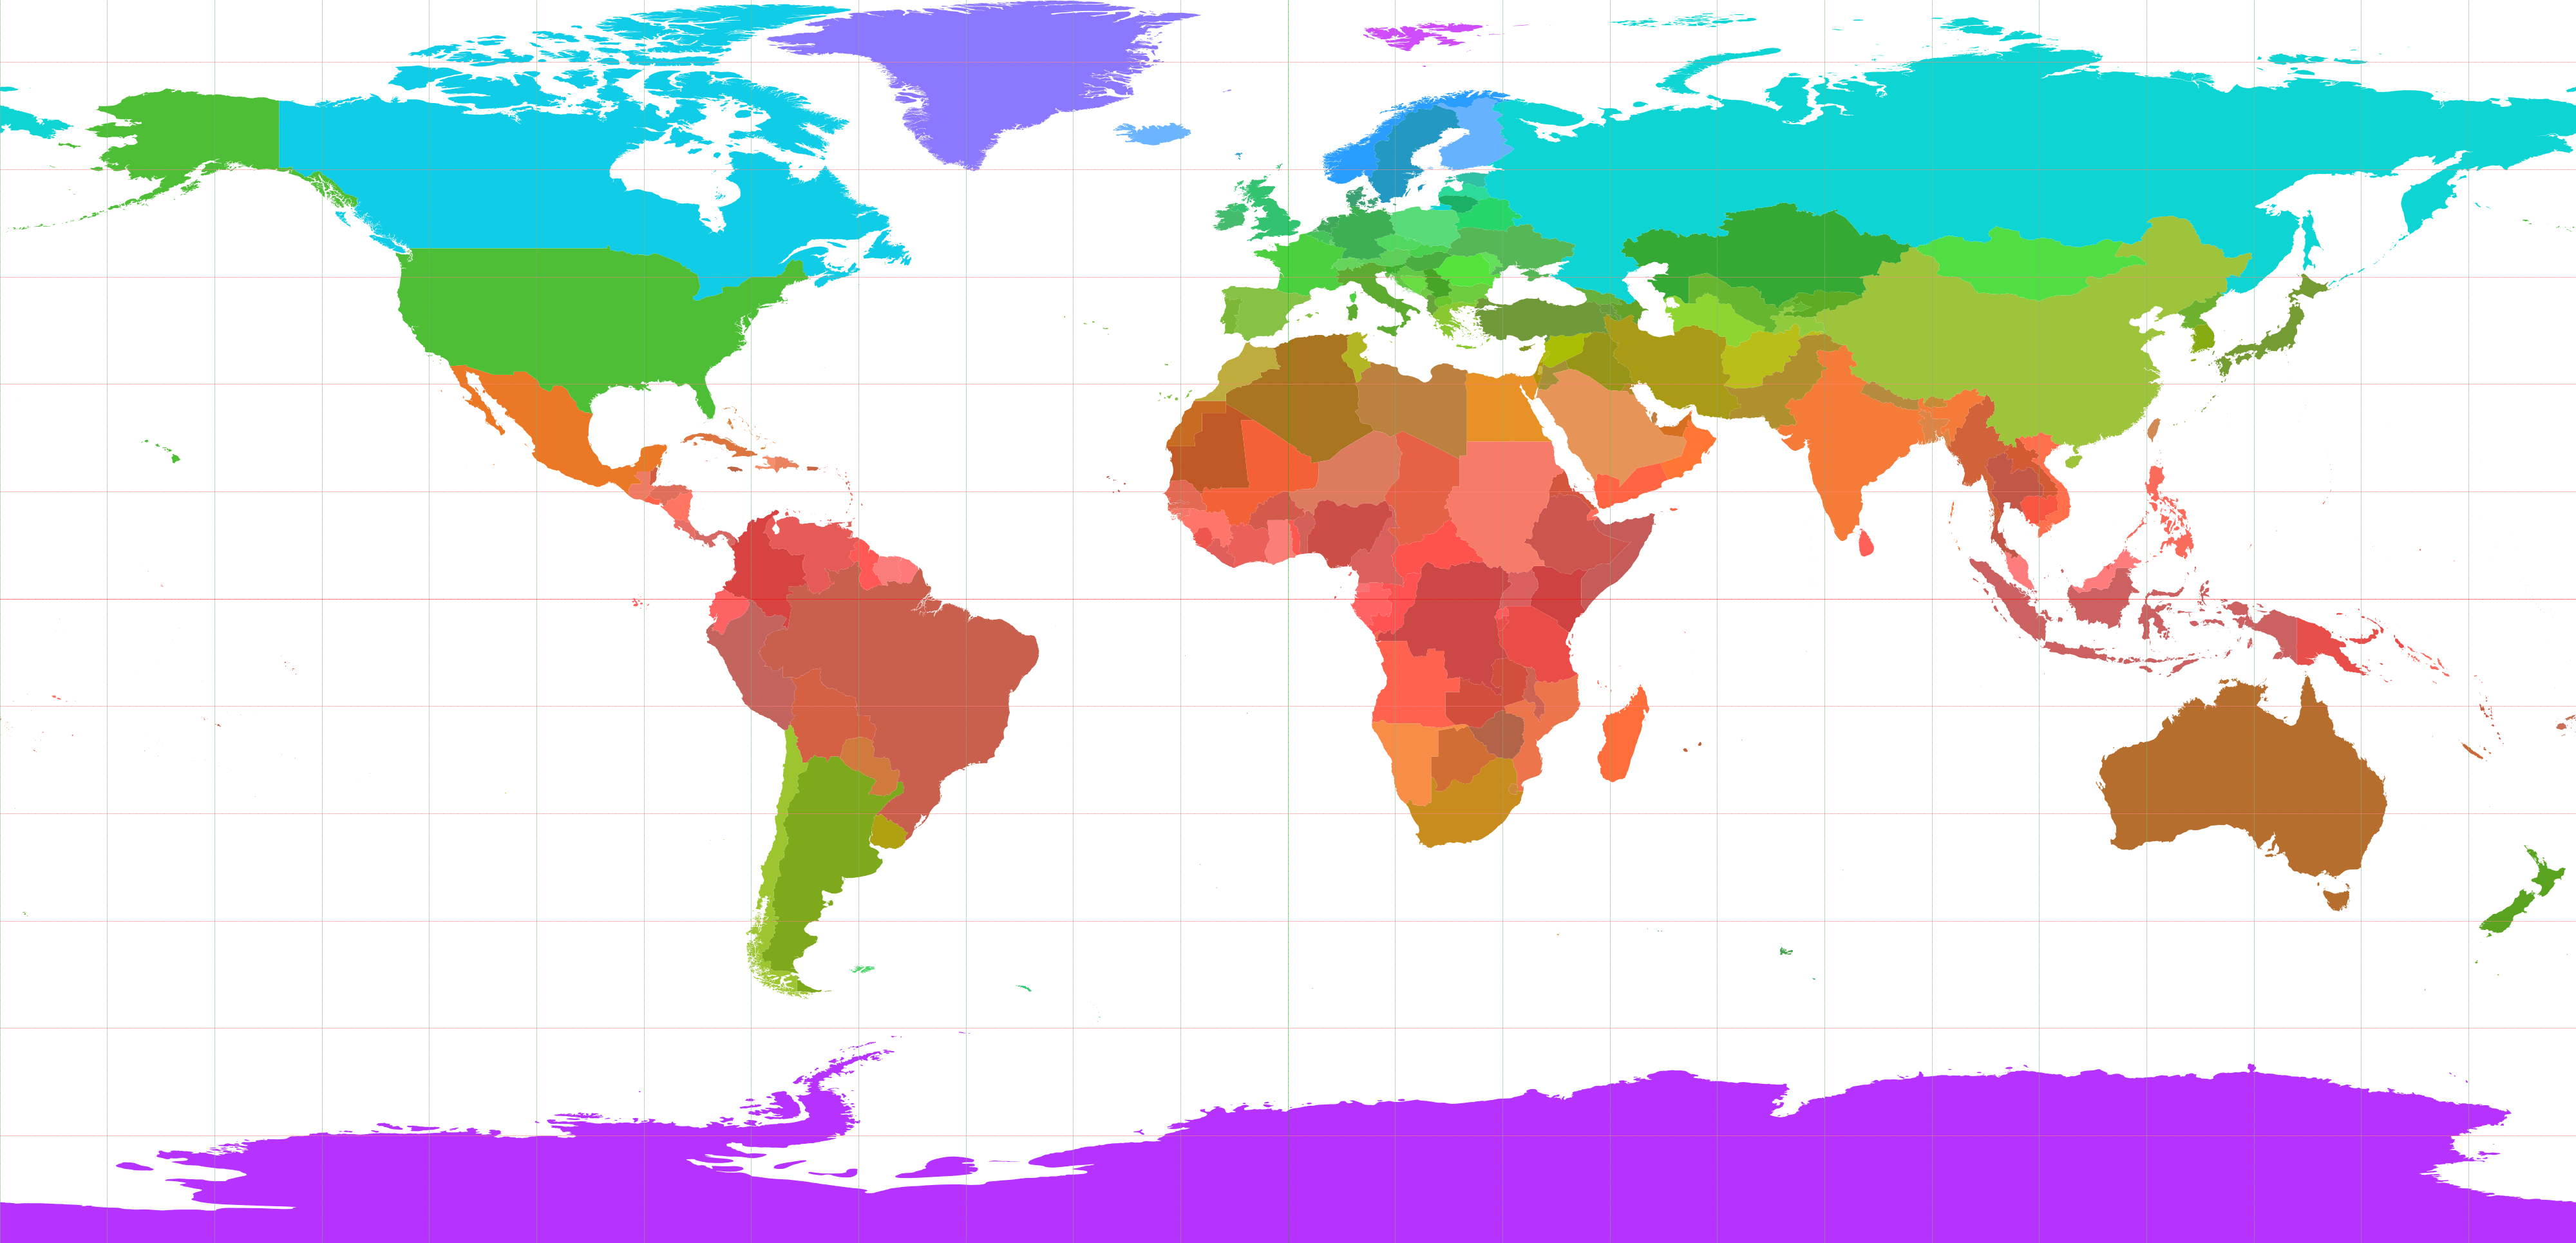 Http Commons Wikimedia Org Wiki File World Borders Geo Hsi Png